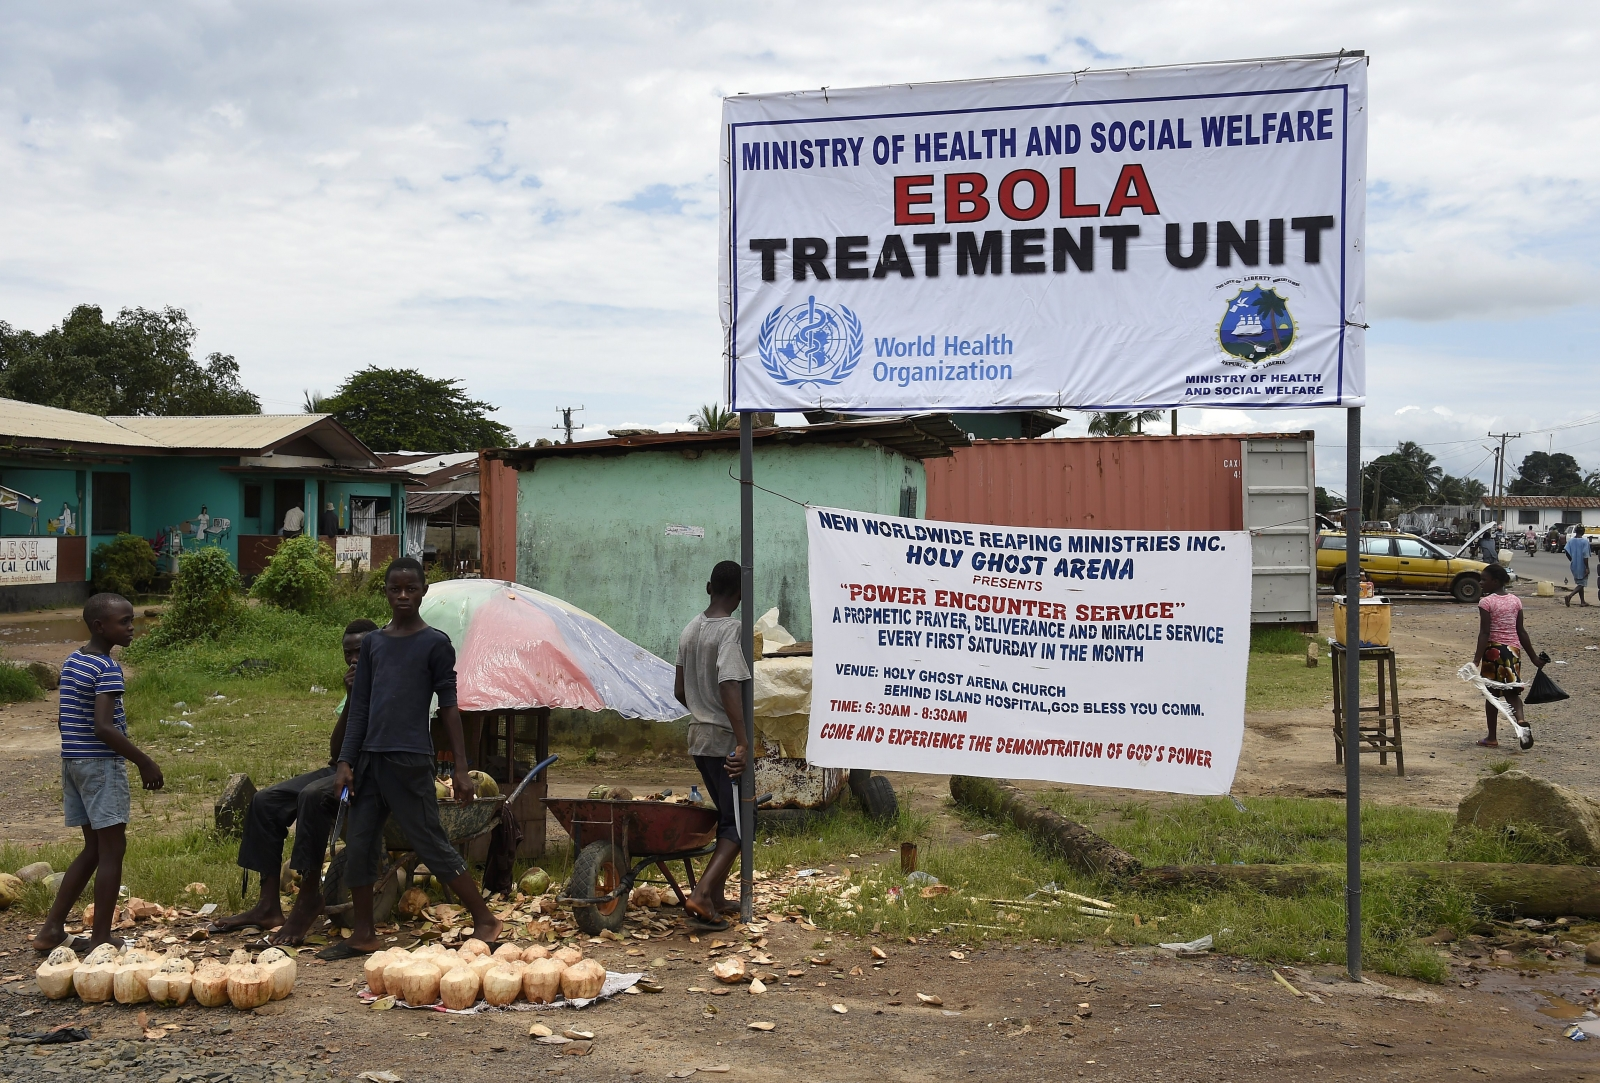 Ebola treatment clinic in Monrovia, Liberia. (PASCAL GUYOT/AFP/Getty Images)